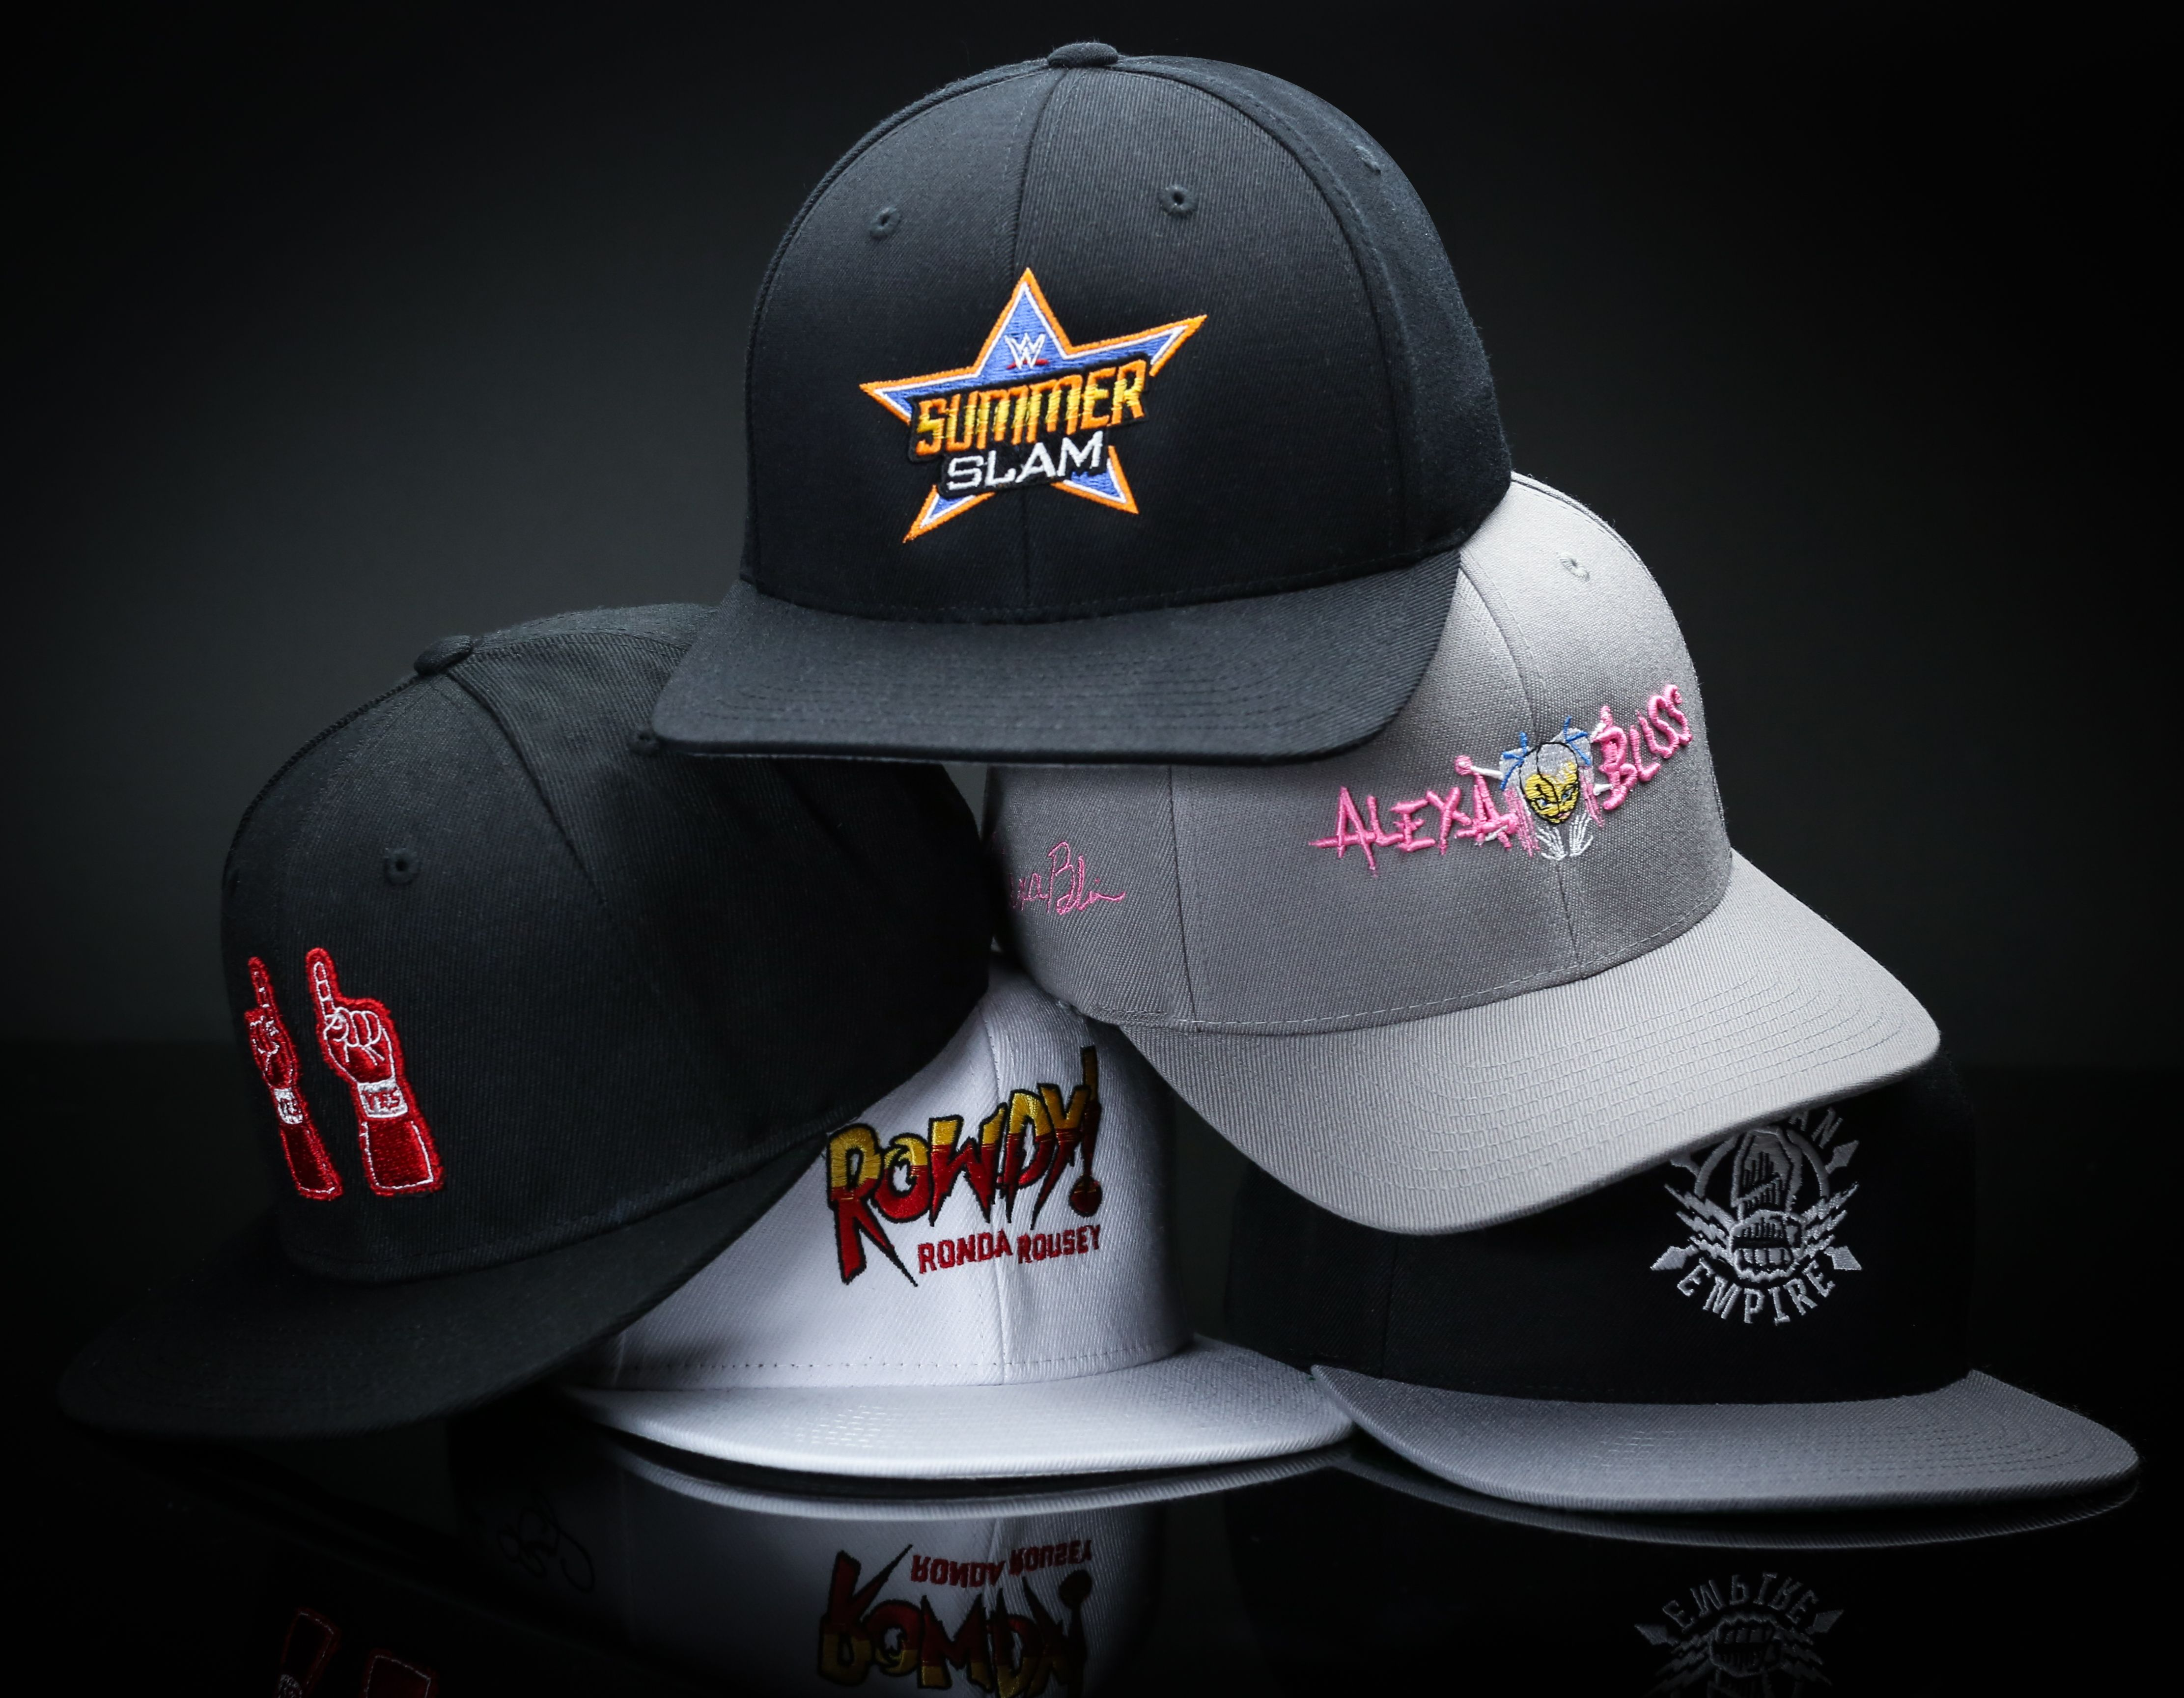 Lids Custom Hats >> Personalize Your Love For Wwe With Custom Hats By Lids